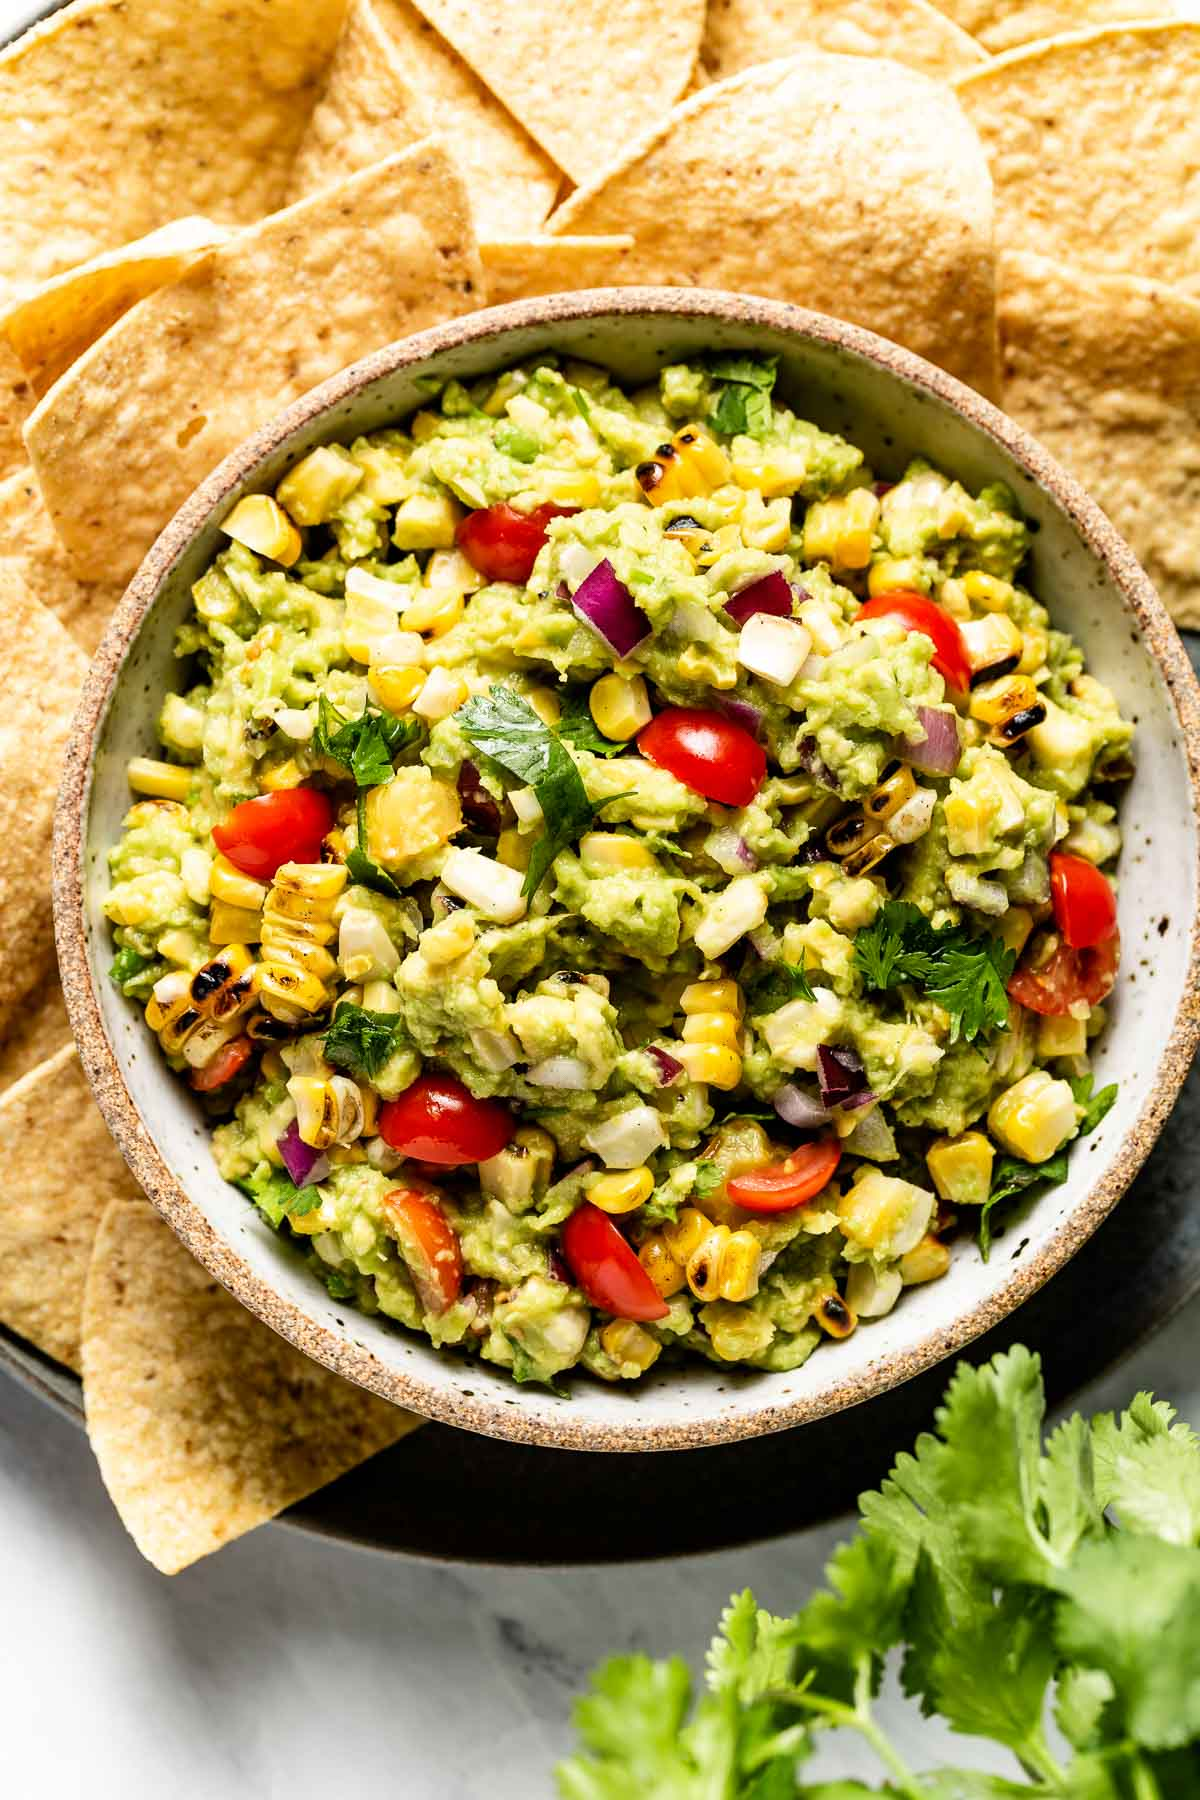 Corn guacamole in a bowl served with tortilla chips on the side